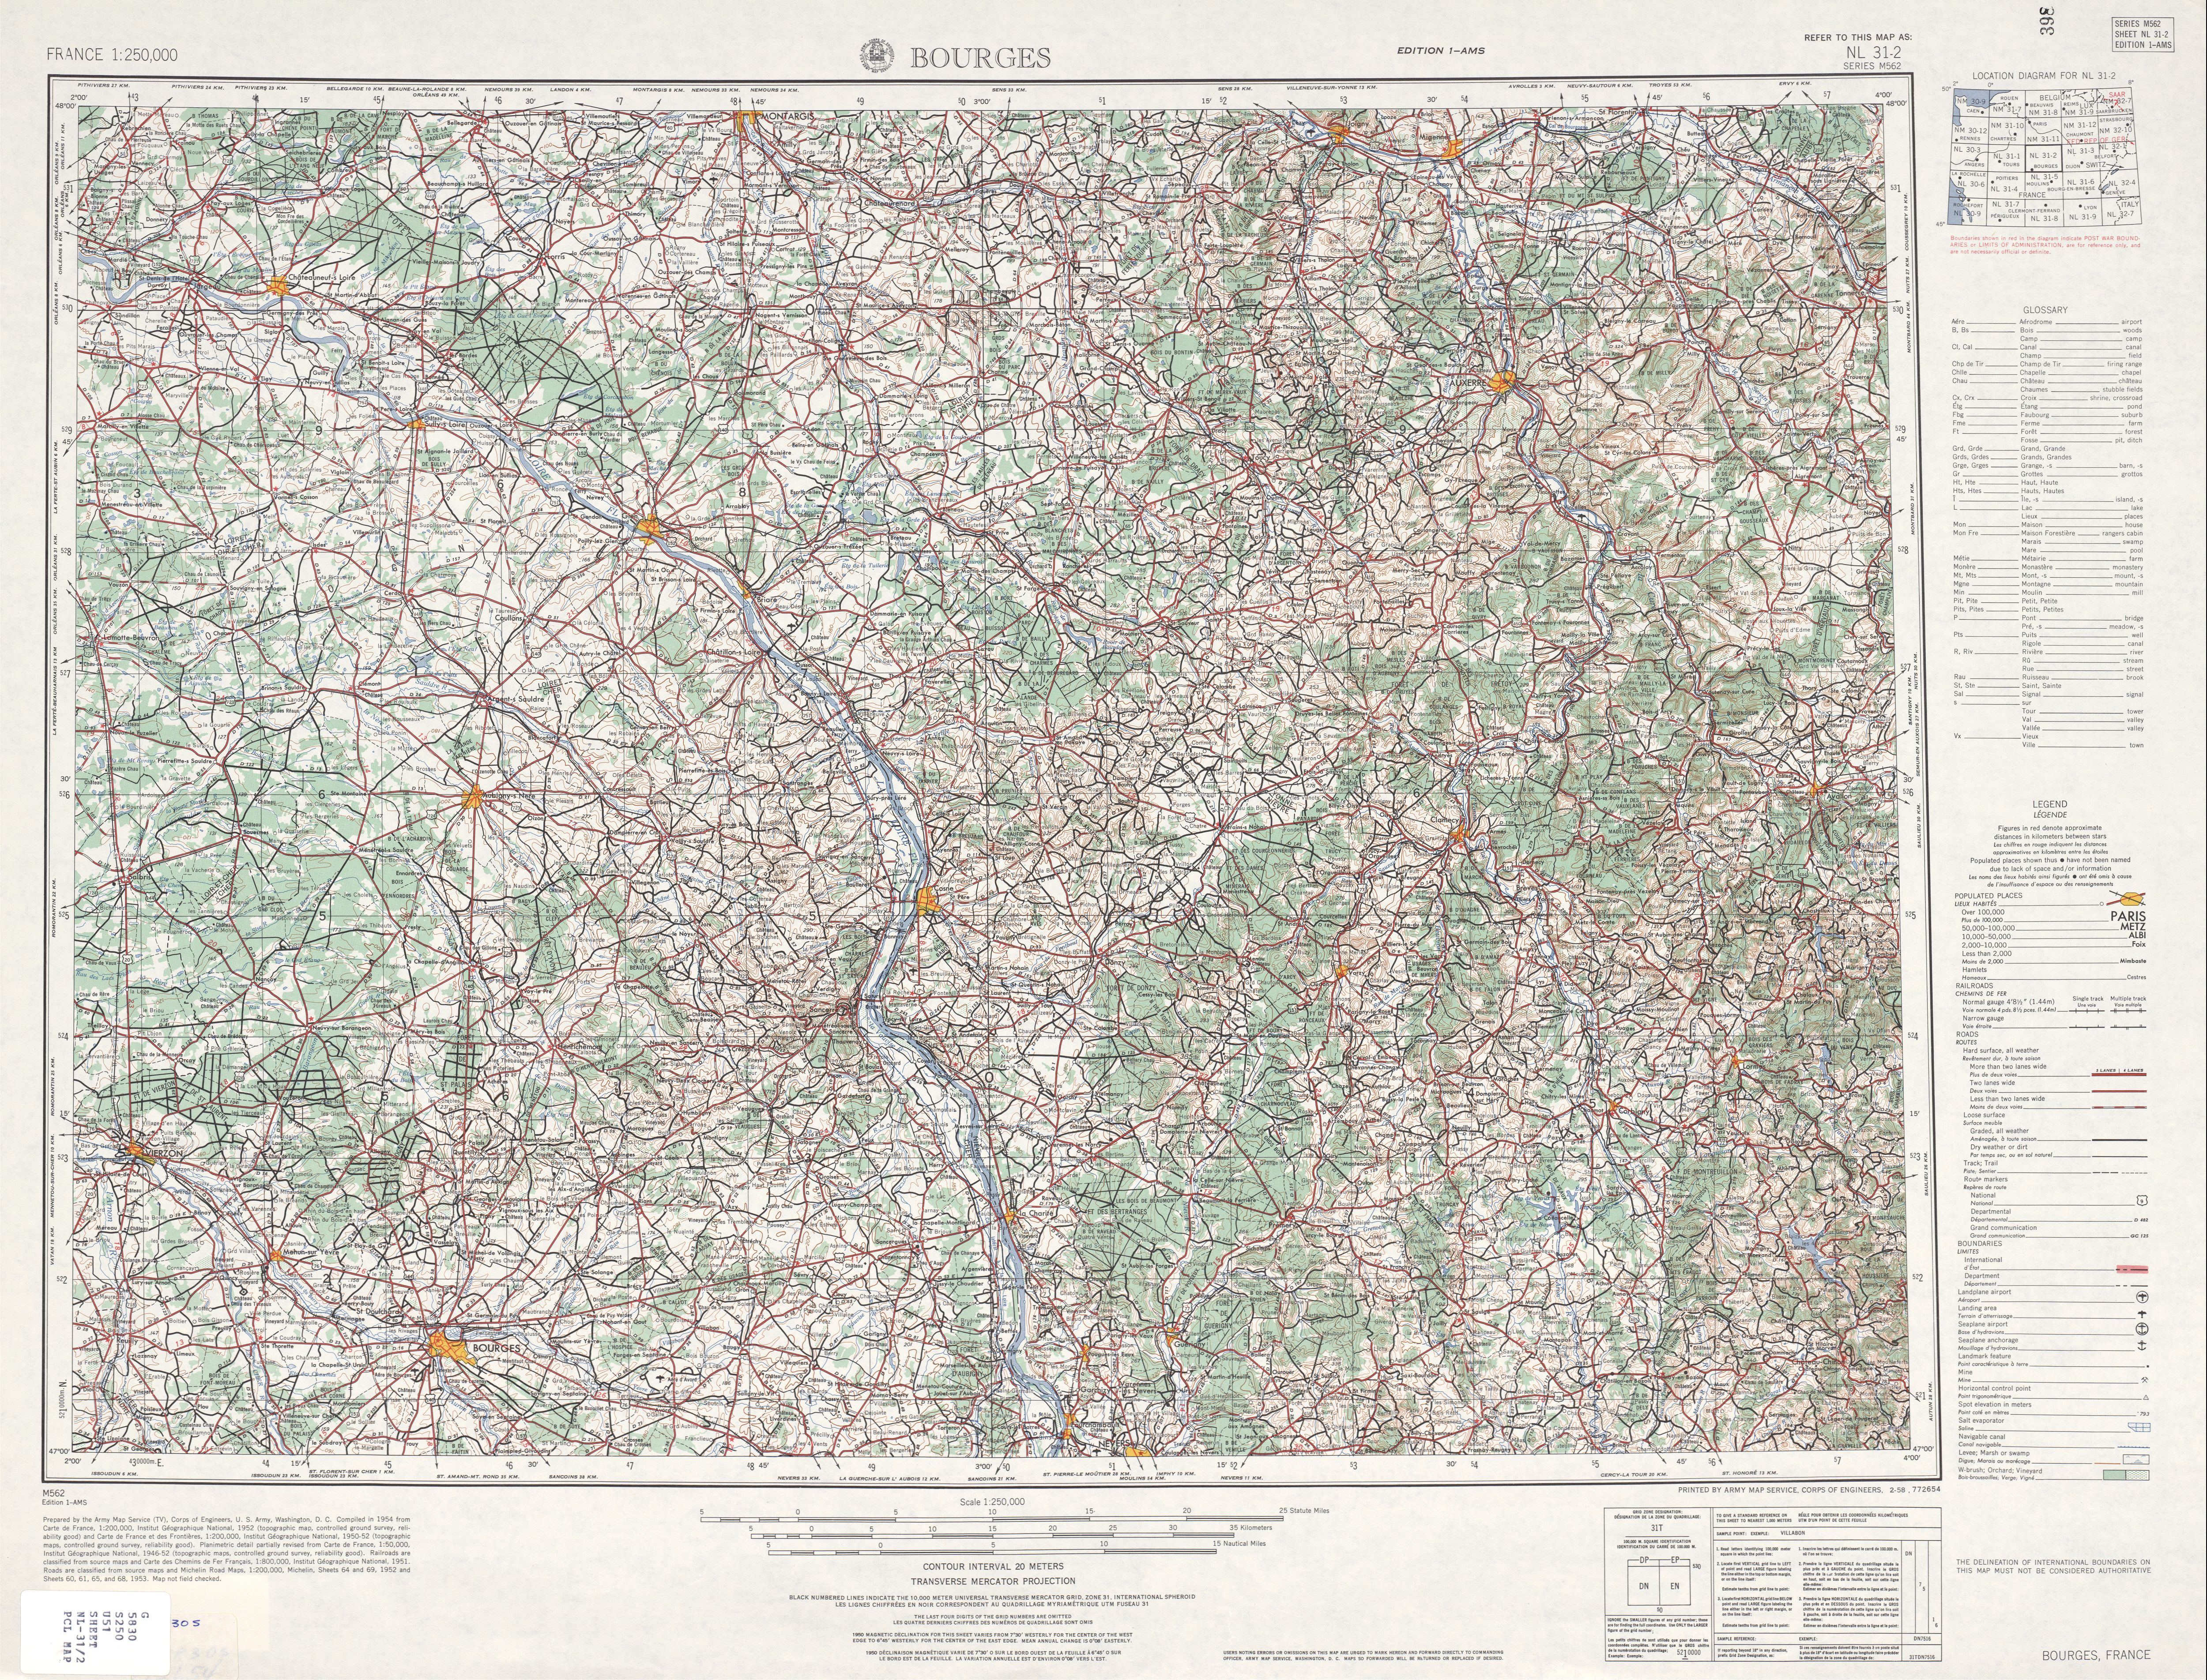 Western Europe Ams Topographic Maps Perry Castaneda Map Collection